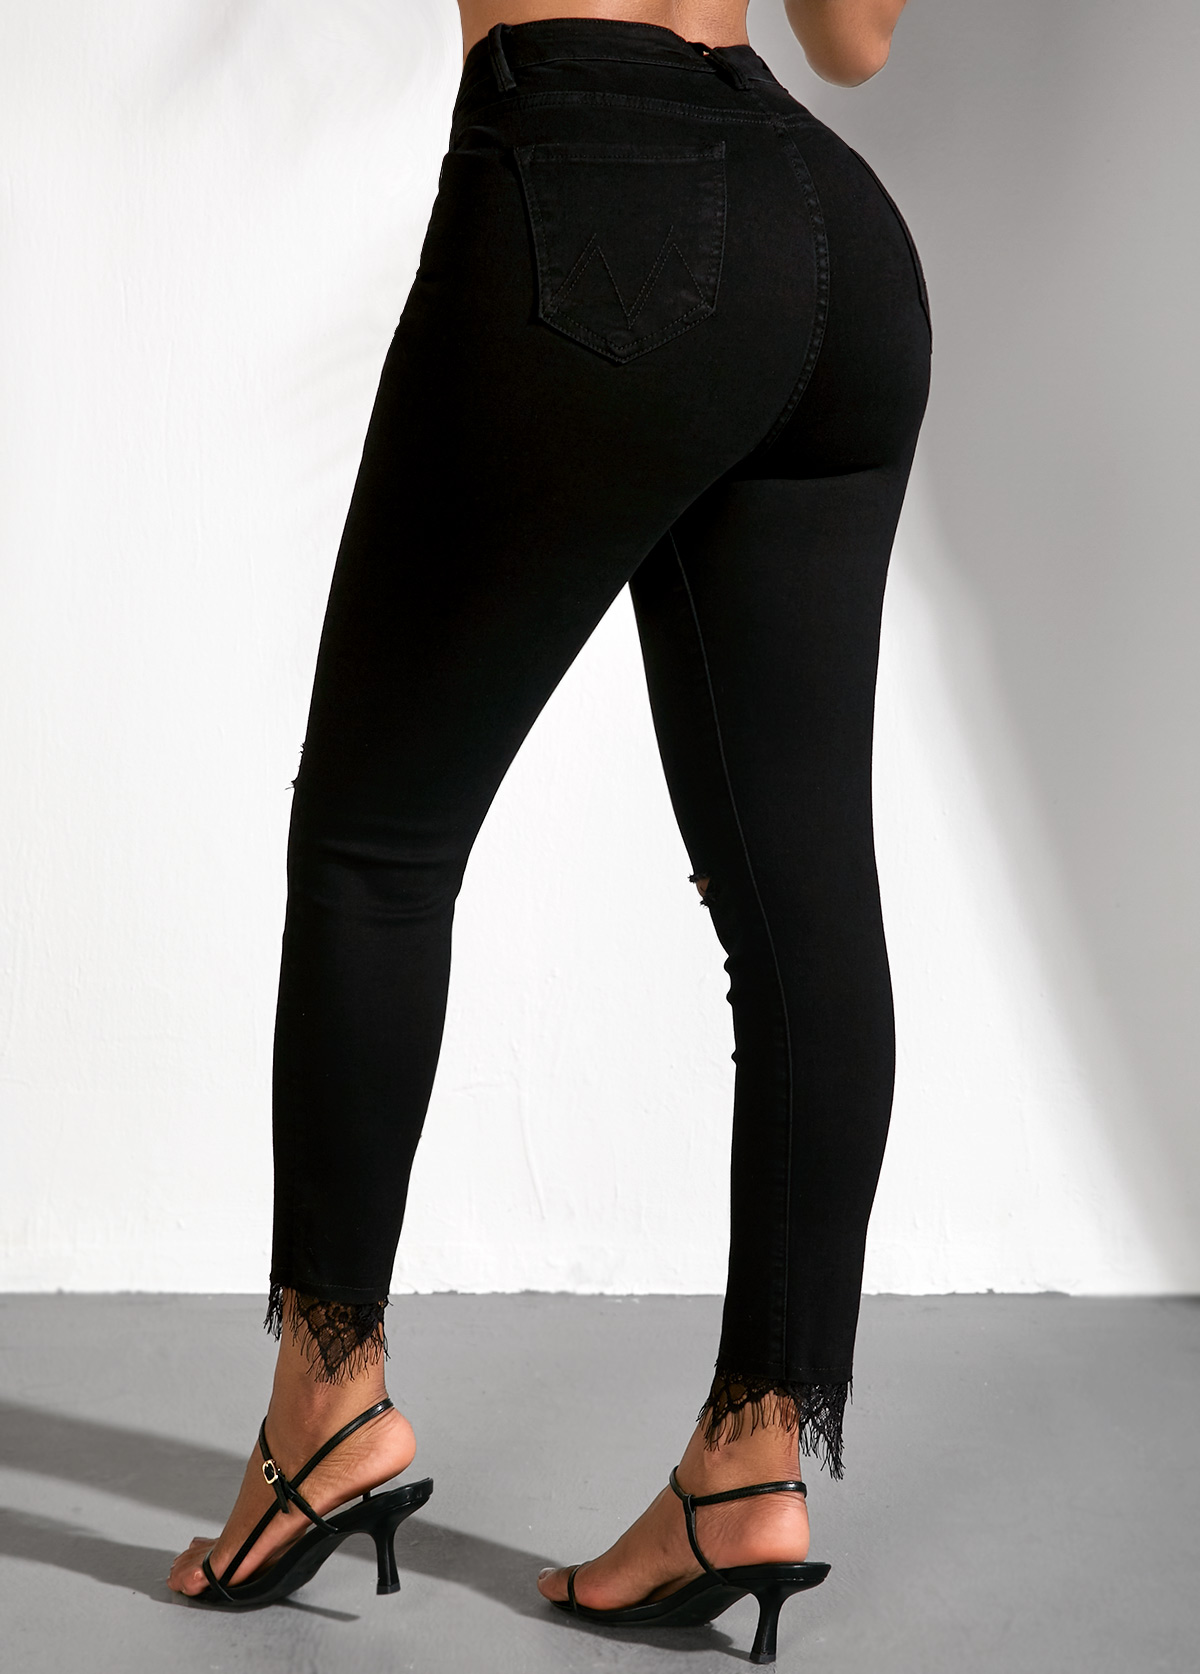 Lace Panel Black High Waist Shredded Jeans